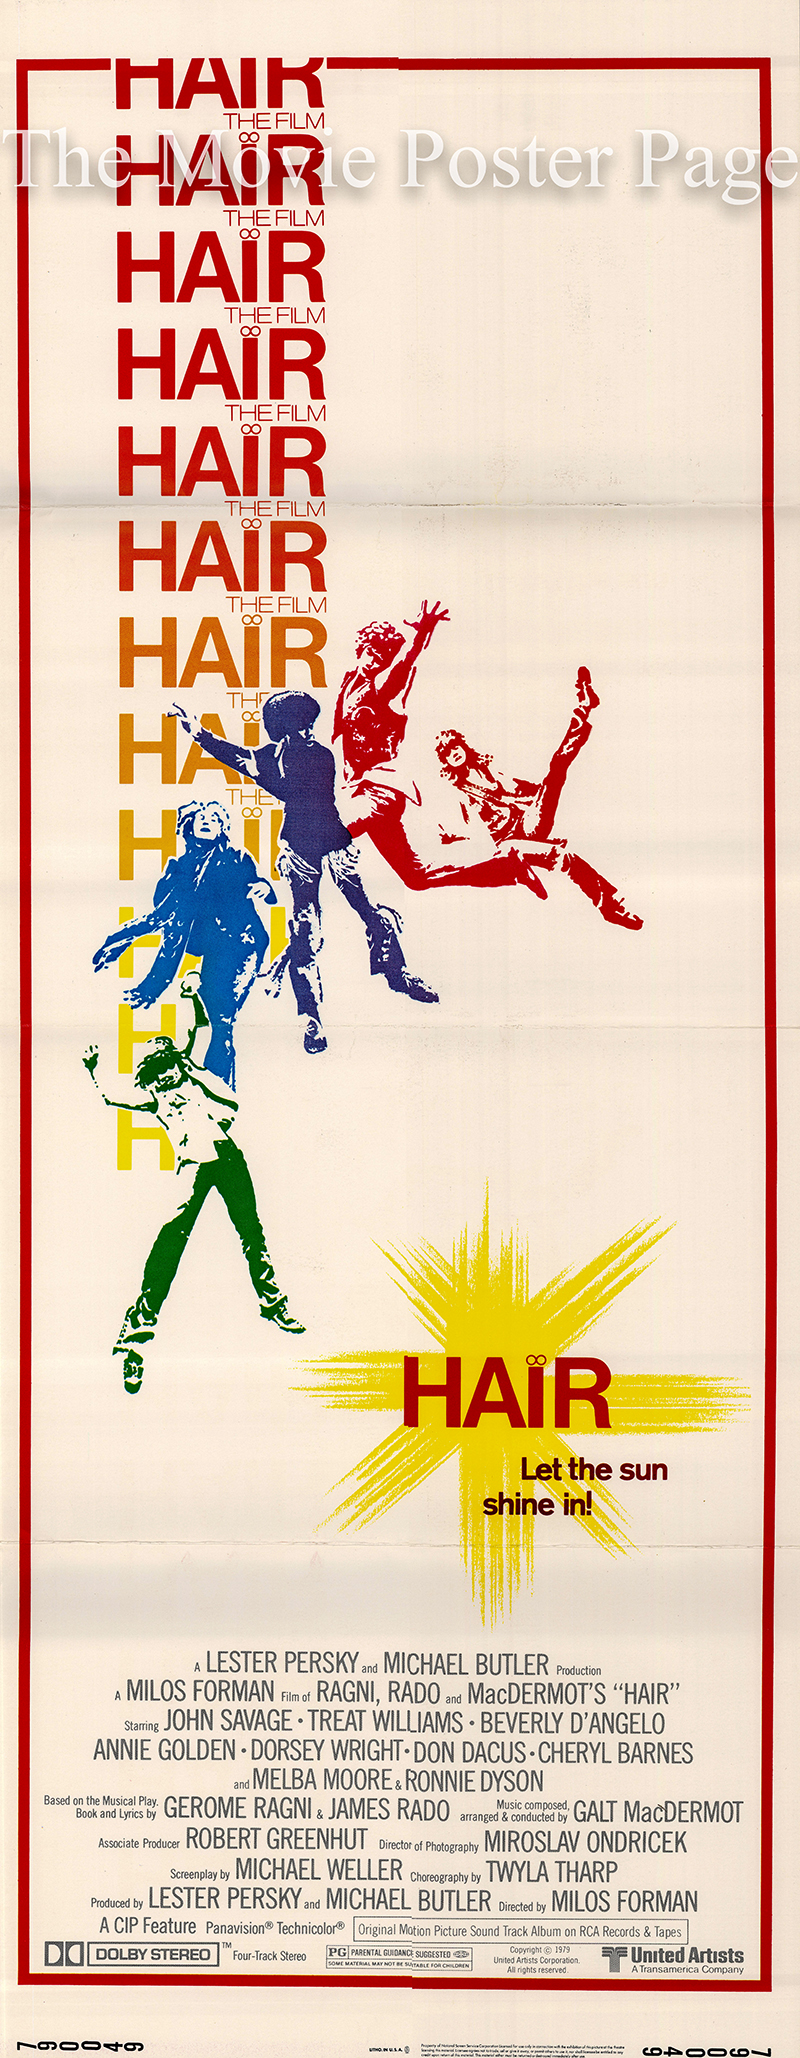 Pictured is a US insert poster for the 1979 Milos Forman film Hair starring John Savage.